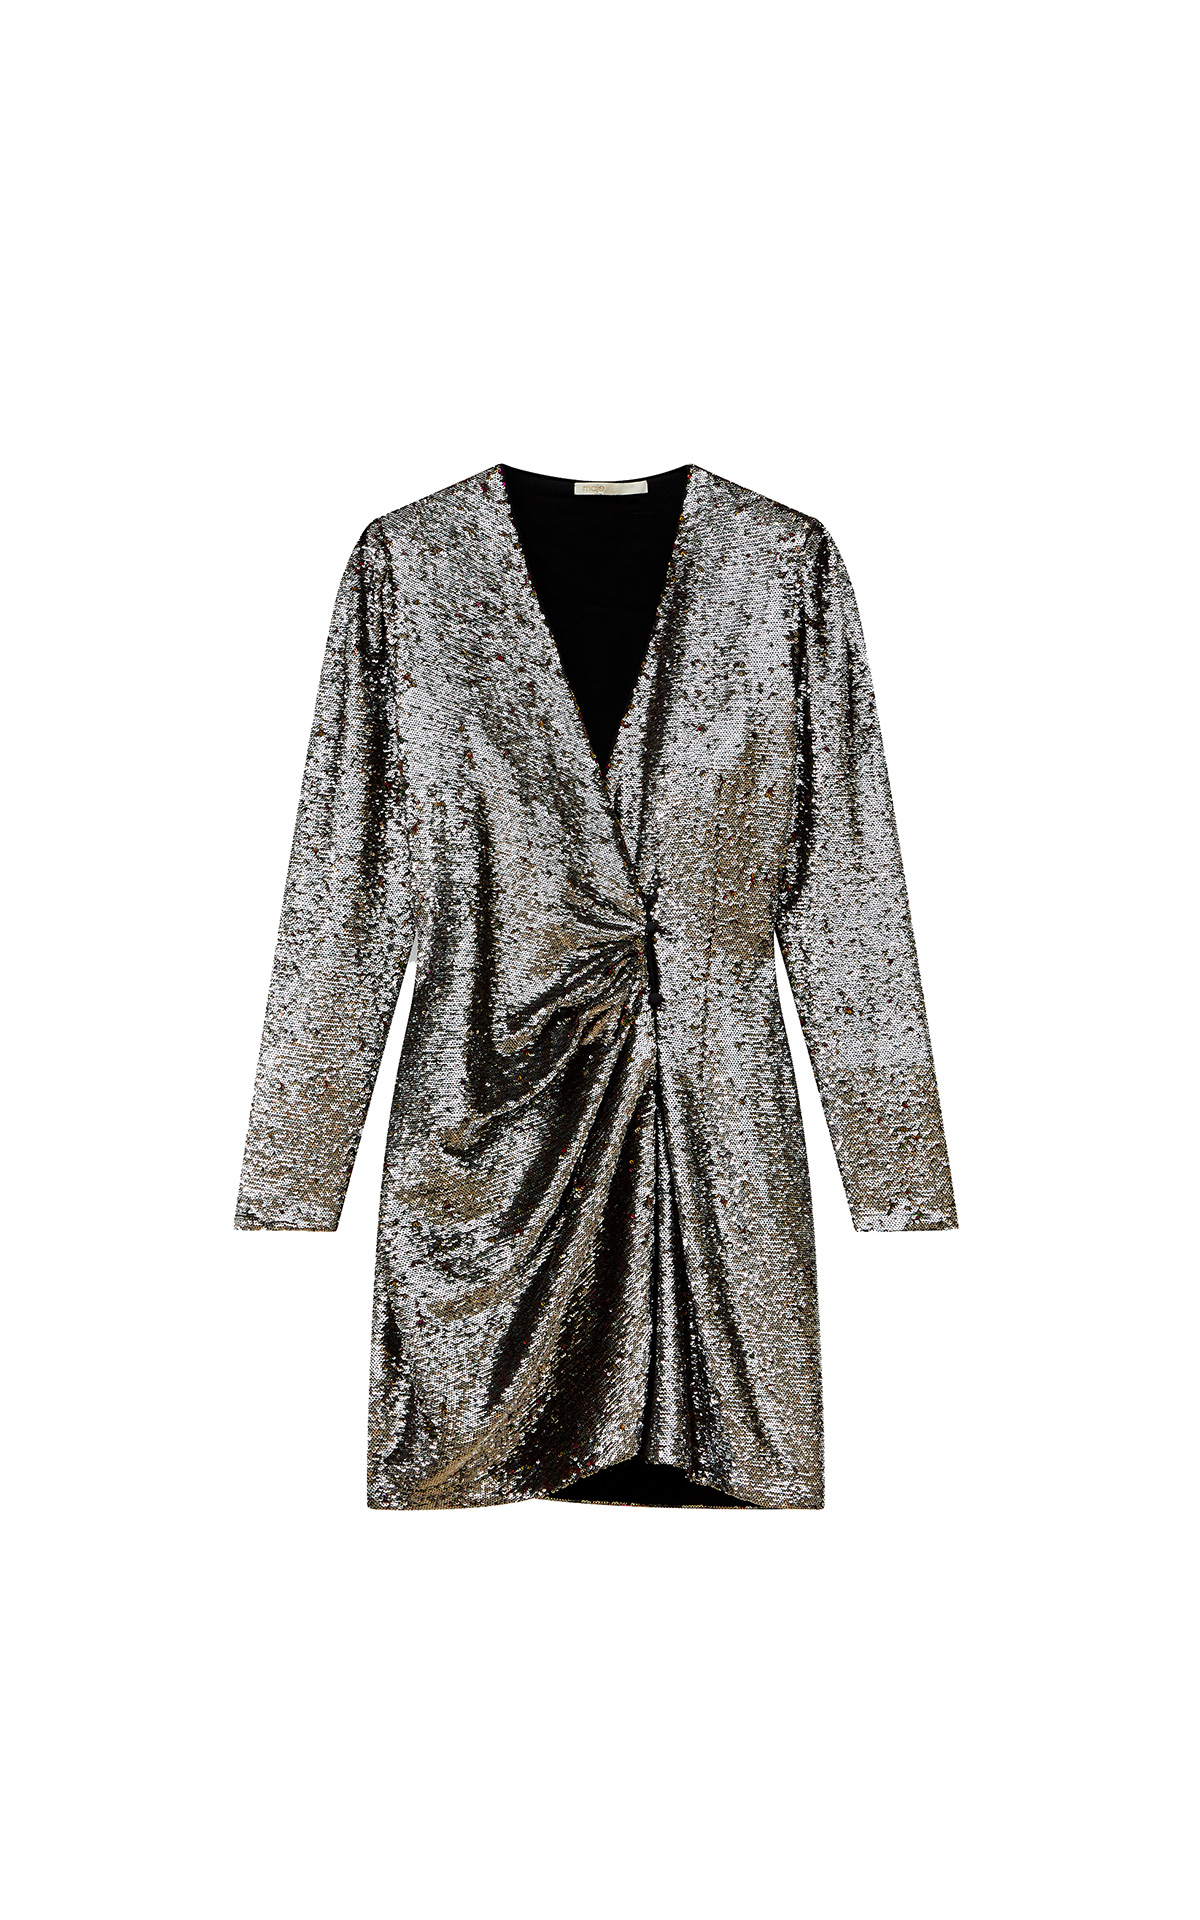 Maje Sequin eveningdress in silver at The Bicester Village Shopping Collection